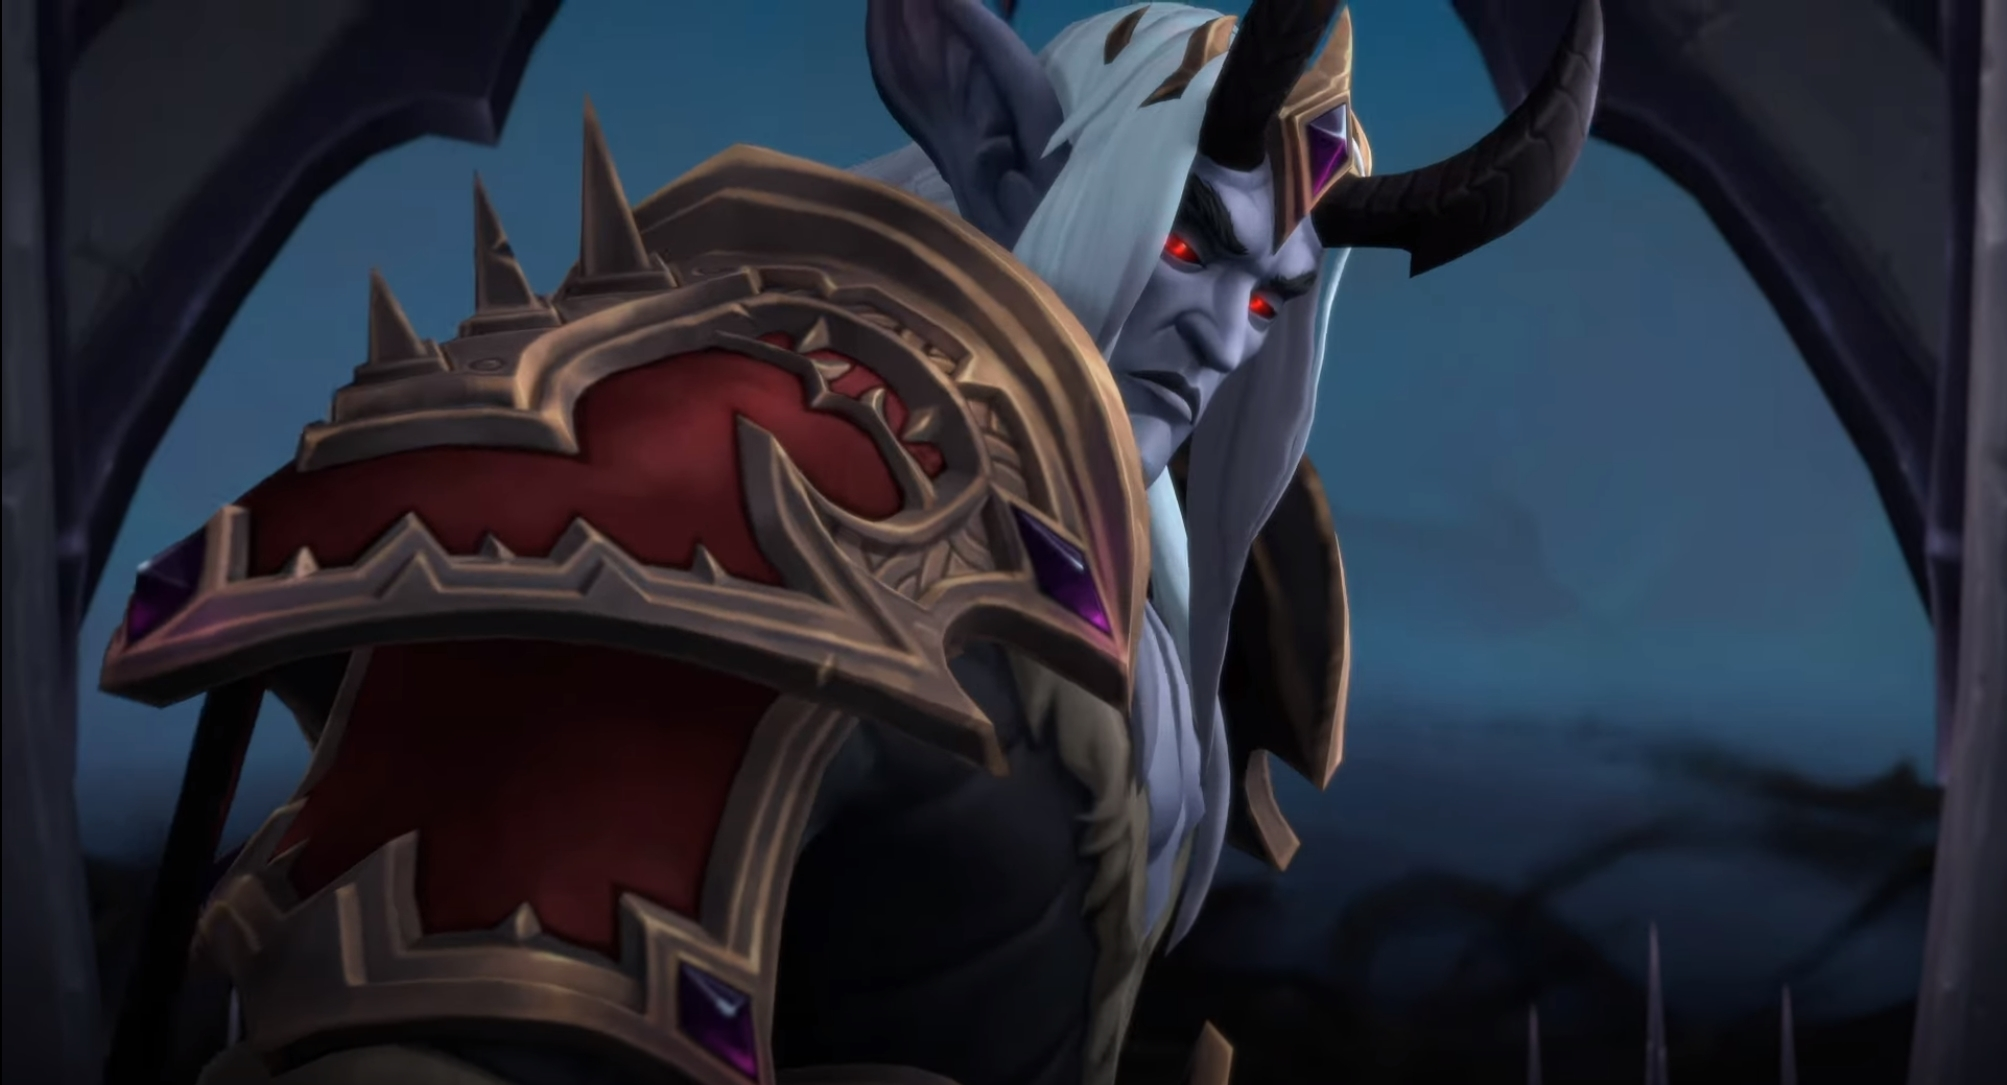 World Of Warcraft: Shadowlands's Castle Nathria Set To Release December 8th